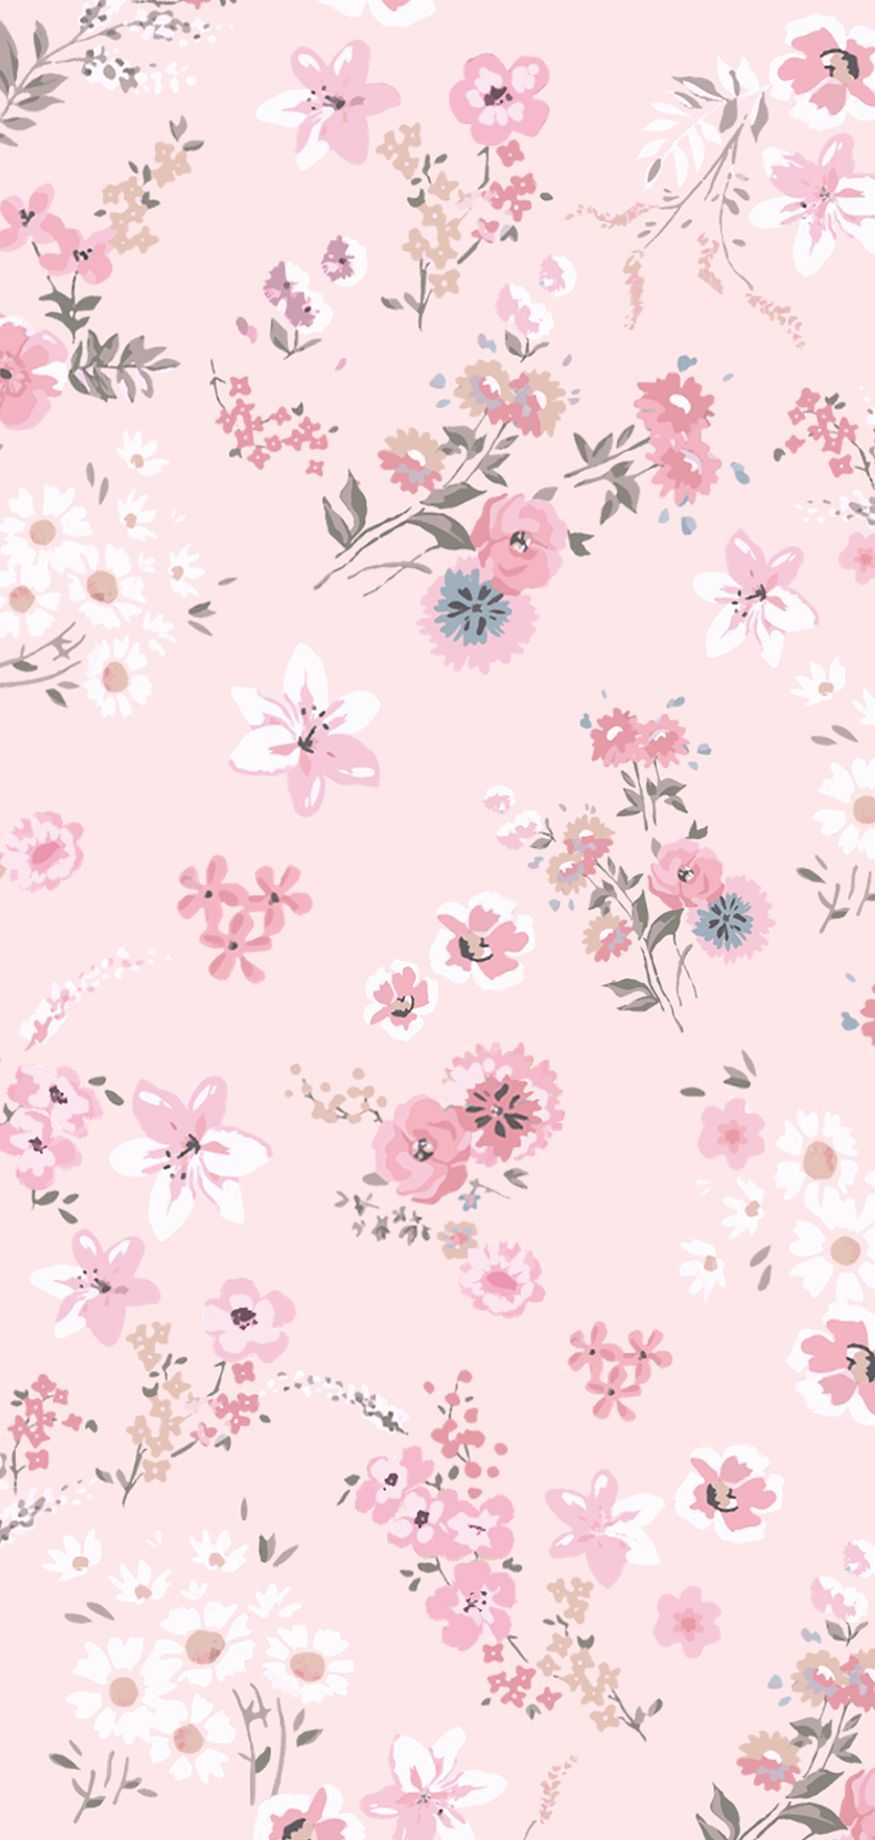 Are You Looking For Inspiration For Wallpaper Check This Out For Perfect Wallpaper Ideas Floral Wallpaper Iphone Pastel Iphone Wallpaper Pink Wallpaper Iphone